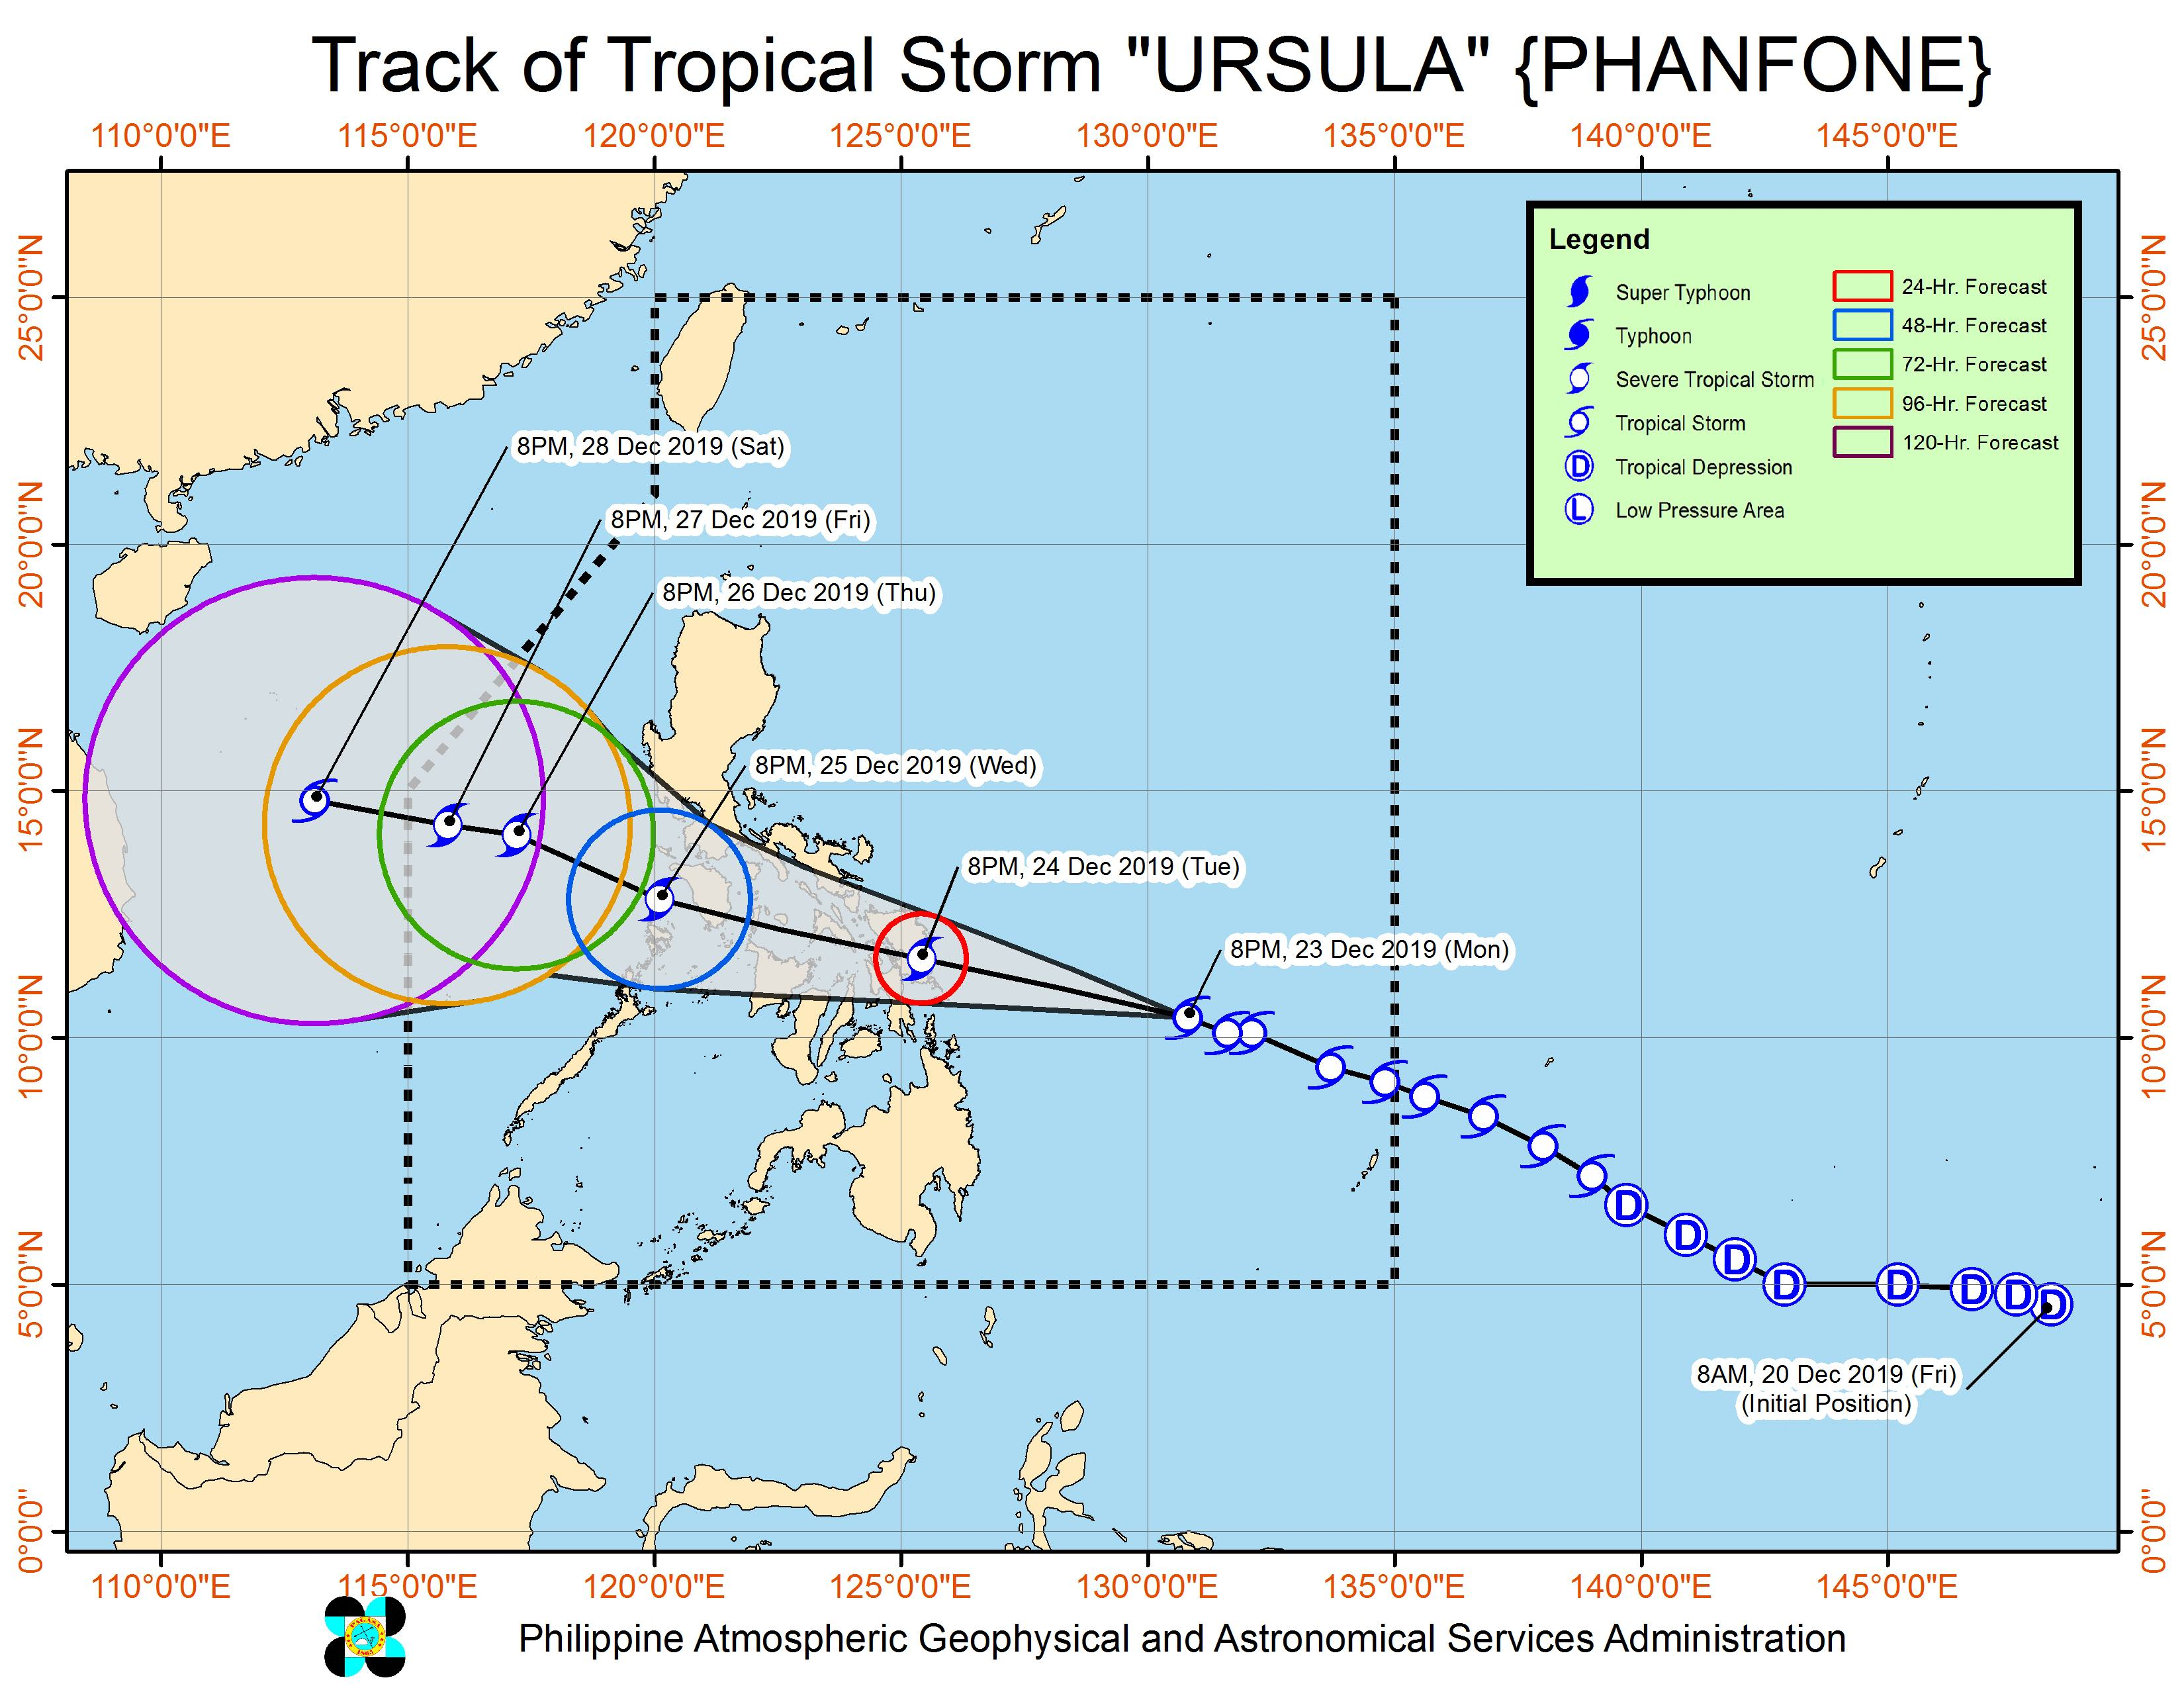 Forecast track of Tropical Storm Ursula (Phanfone) as of December 23, 2019, 11 pm. Image from PAGASA